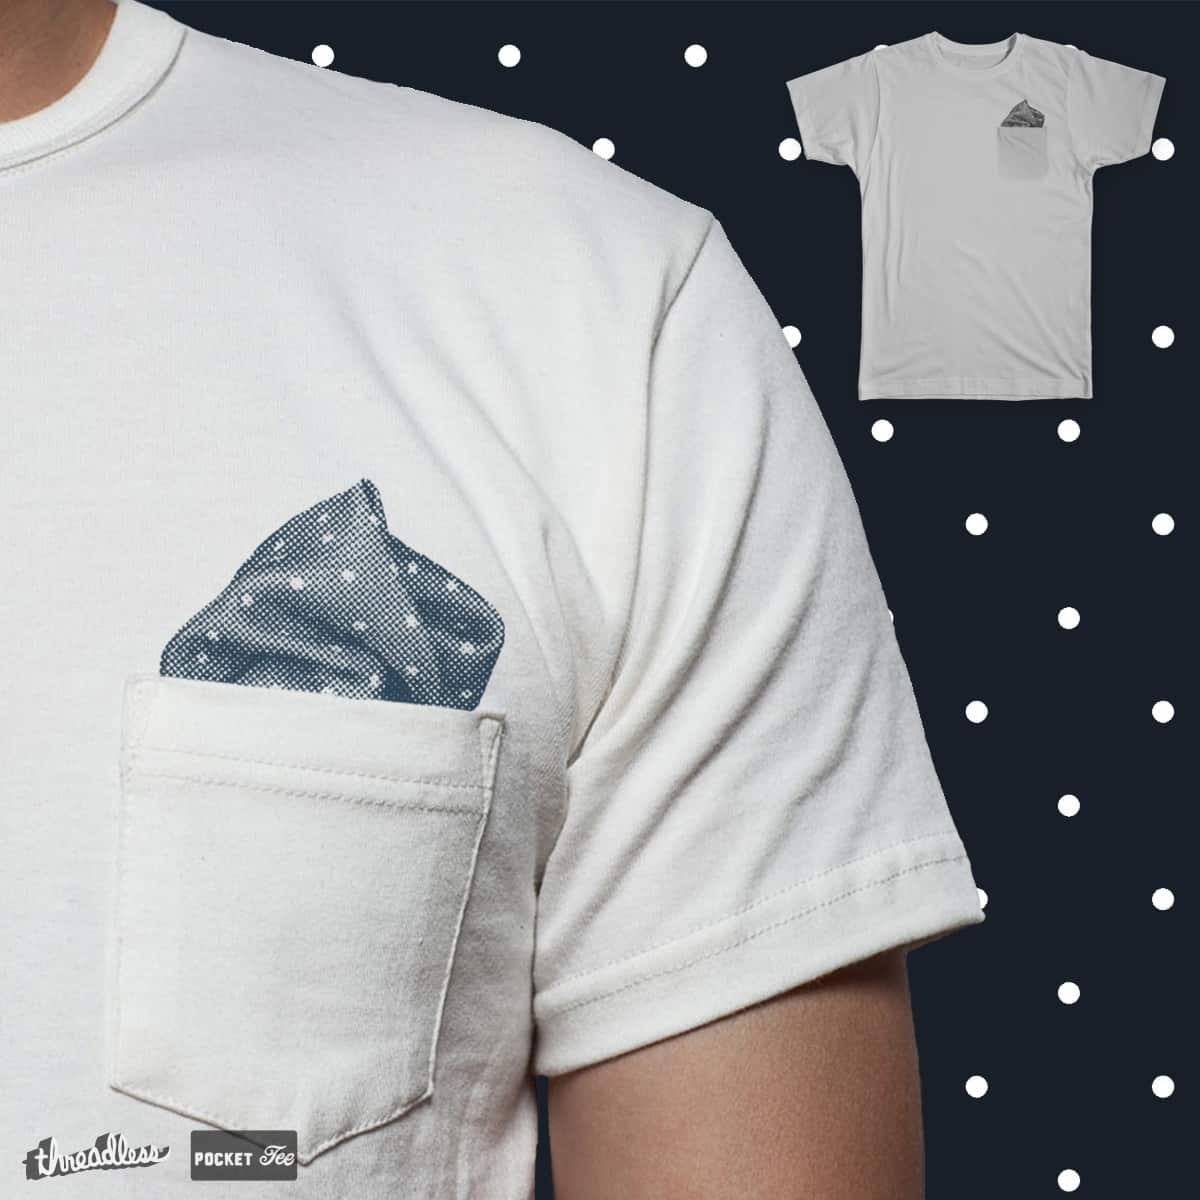 Pocket Square by admrjcvch on Threadless